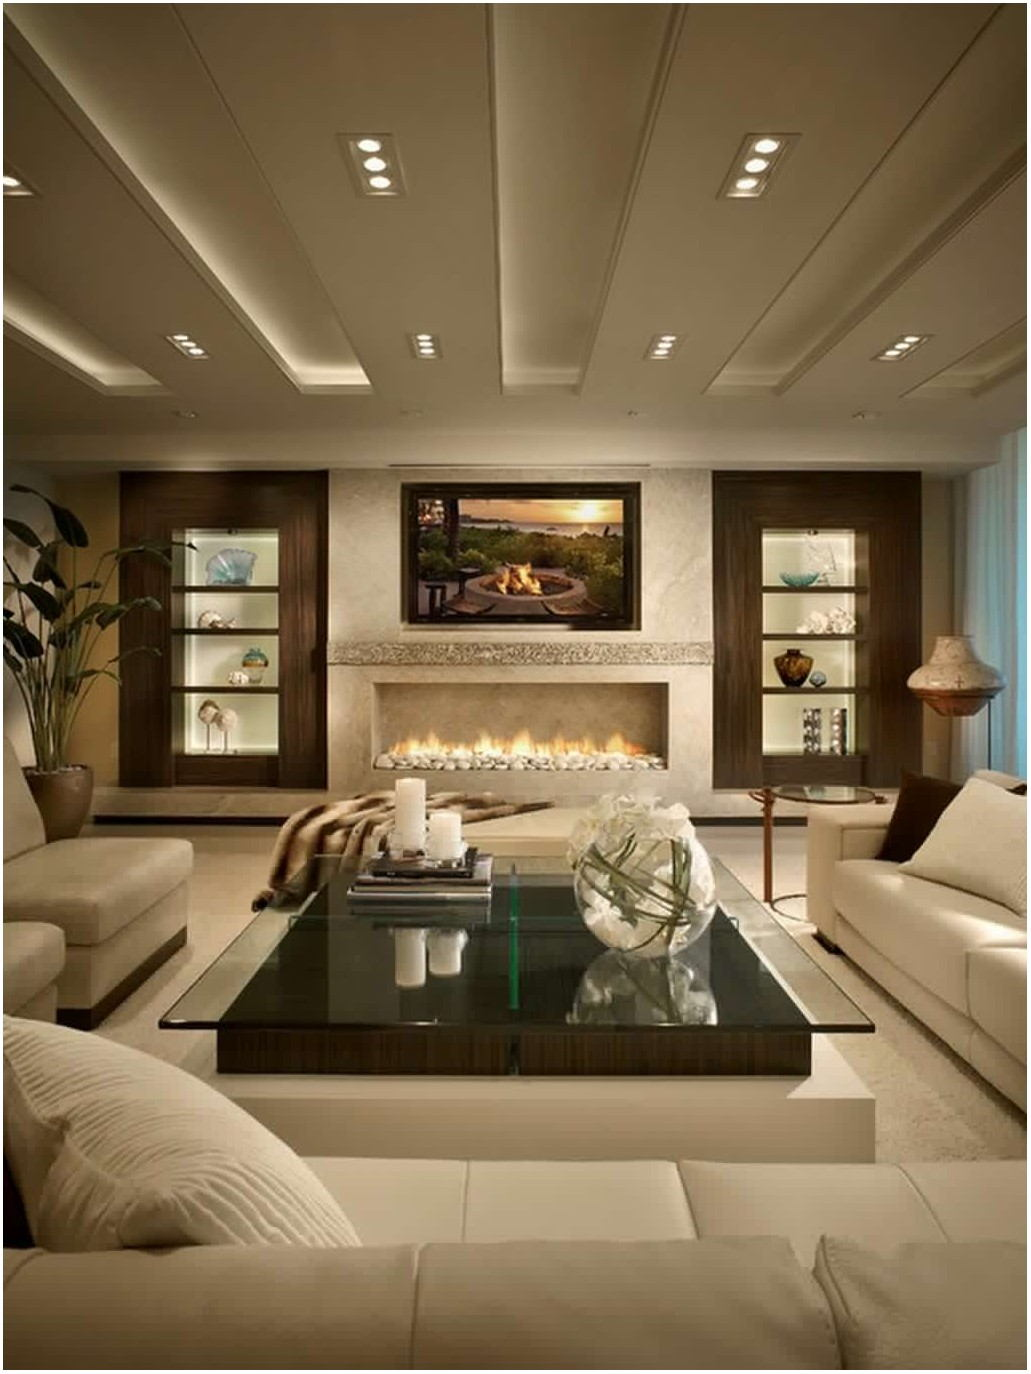 Interior Design Living Room With Fireplace